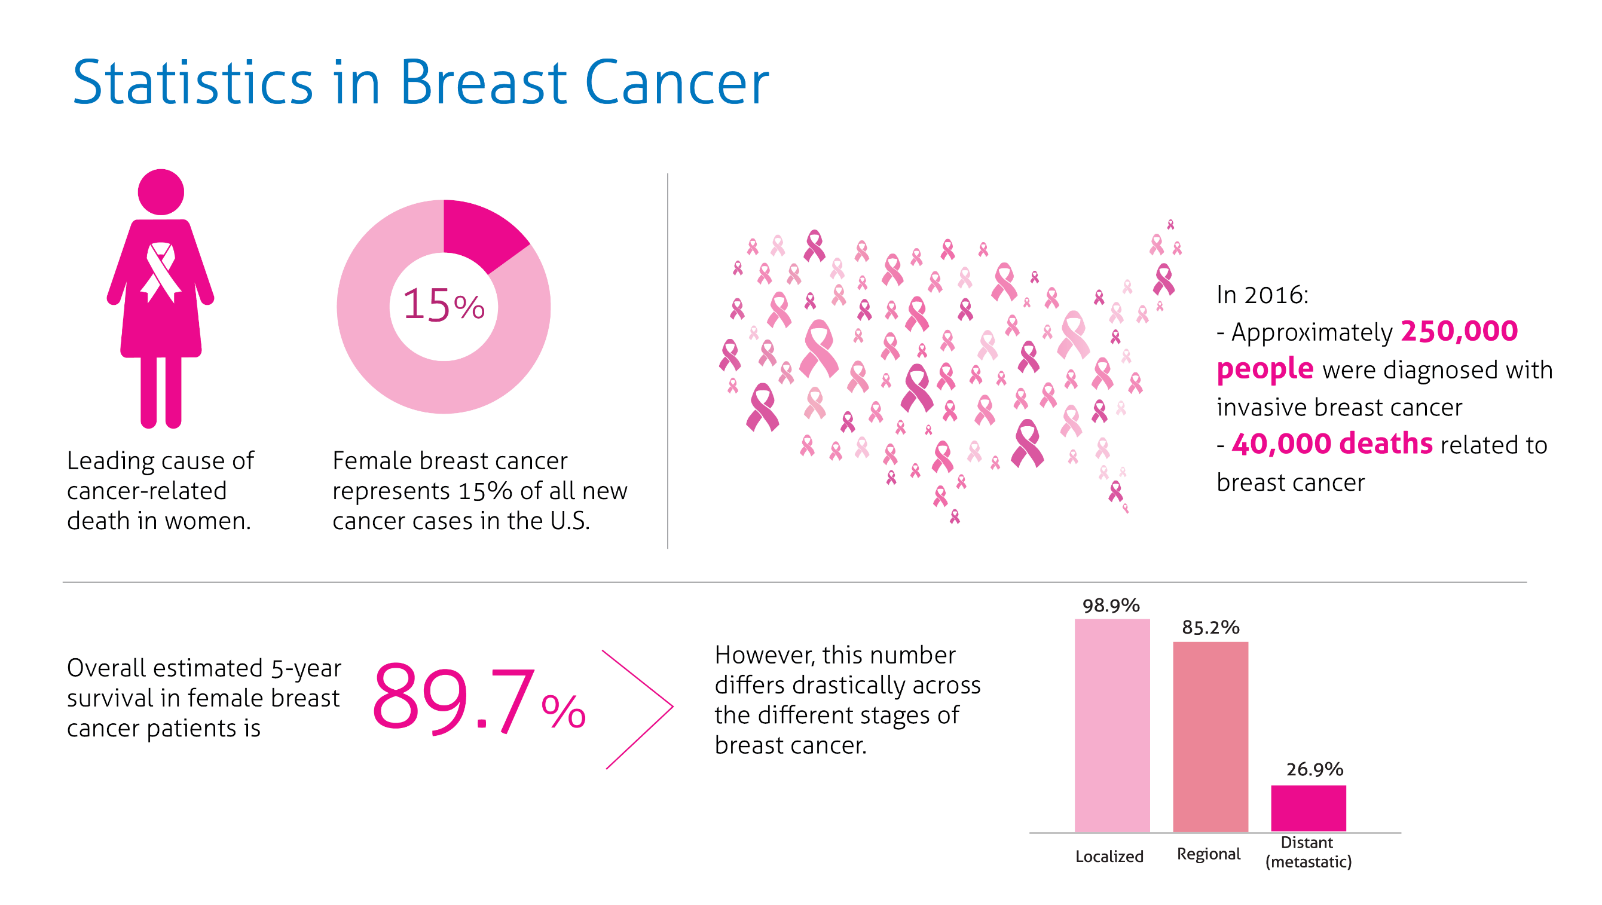 Breast cancer statistics for